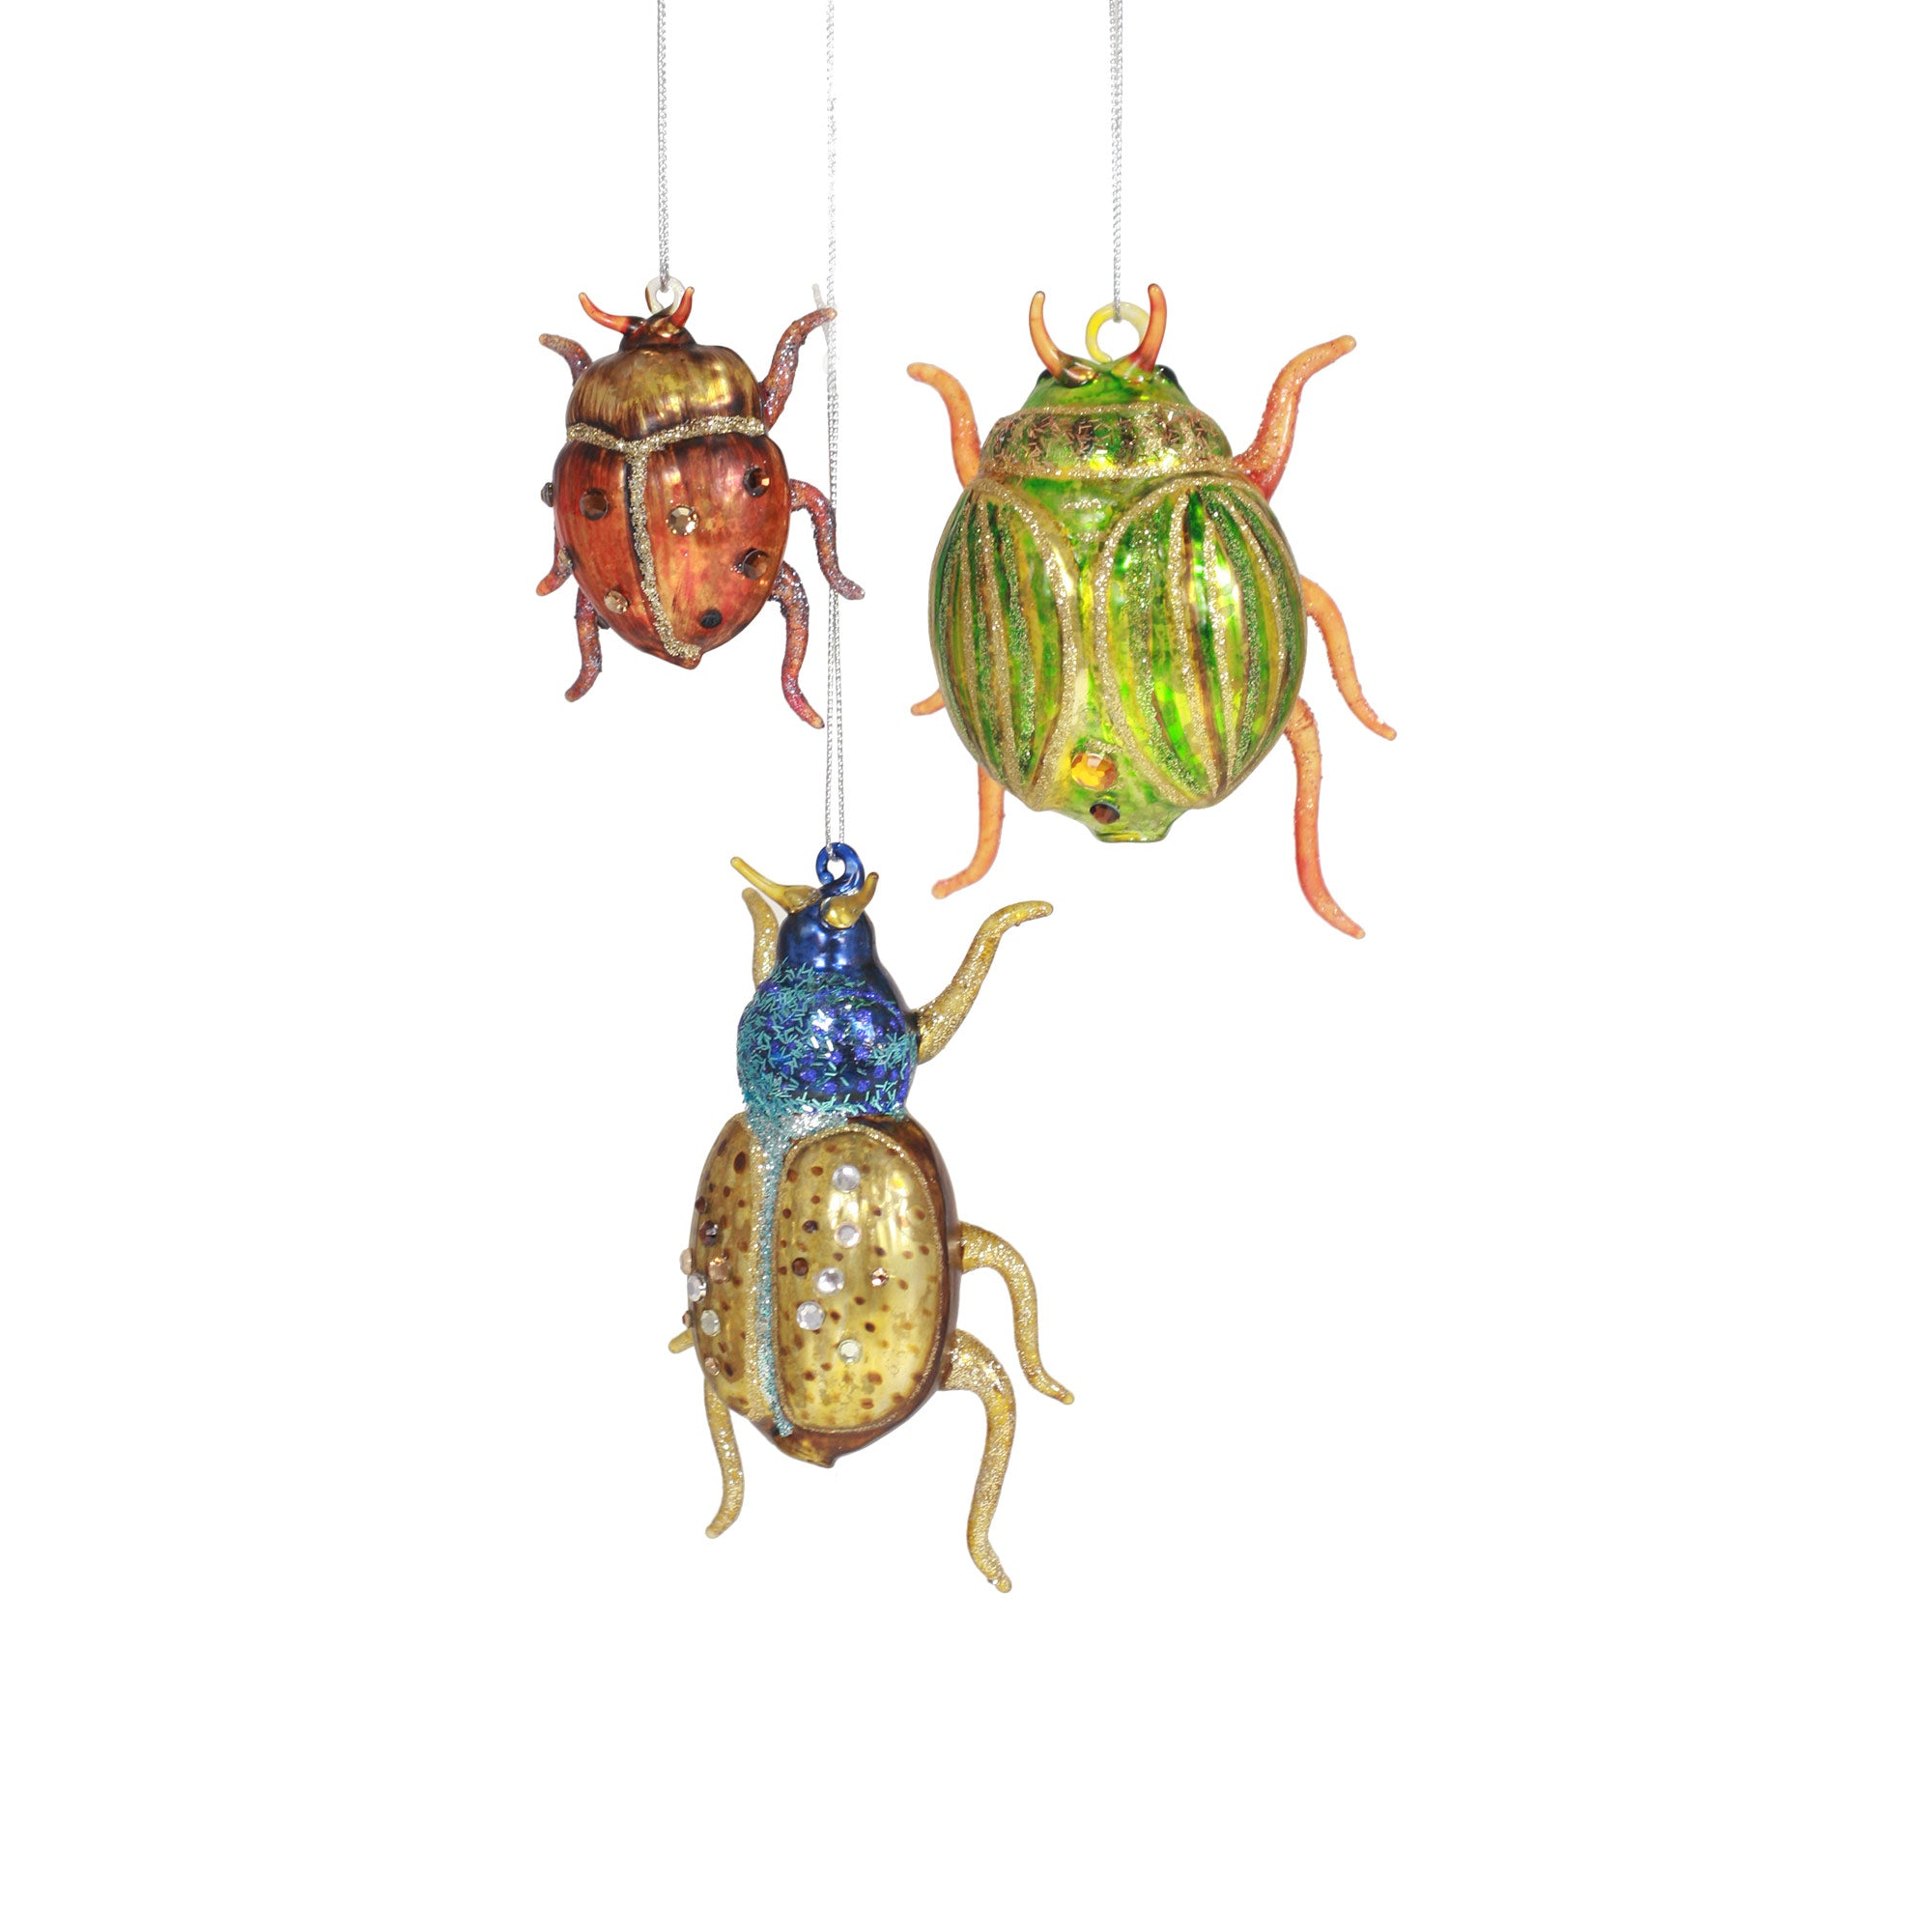 Beetle Ornaments I